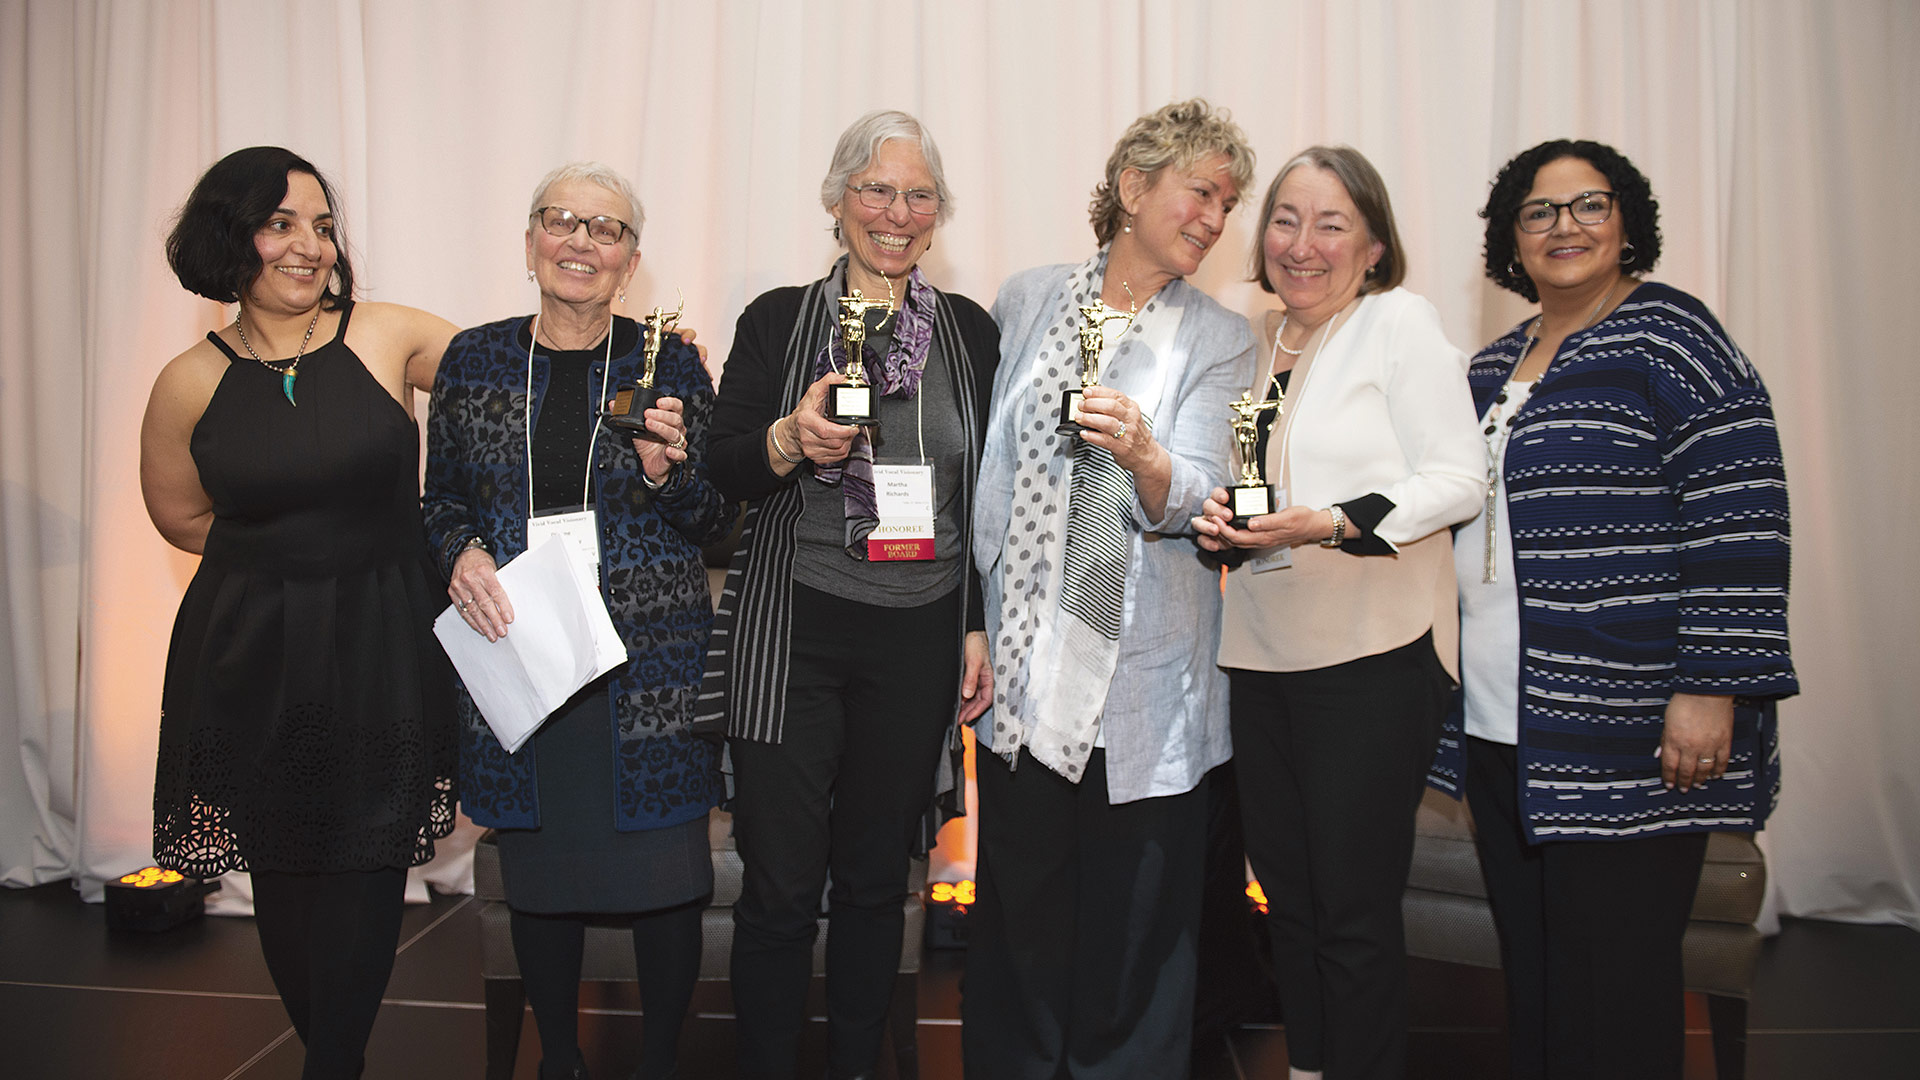 From left, Donna Haghighat, CEO of the WFWM, Doherty, Richards, Nelson, Mimi Ginsberg (accepting for Sally Livingston's family), and Haydee Lamberty-Rodriguez, board chair of the WFMA)